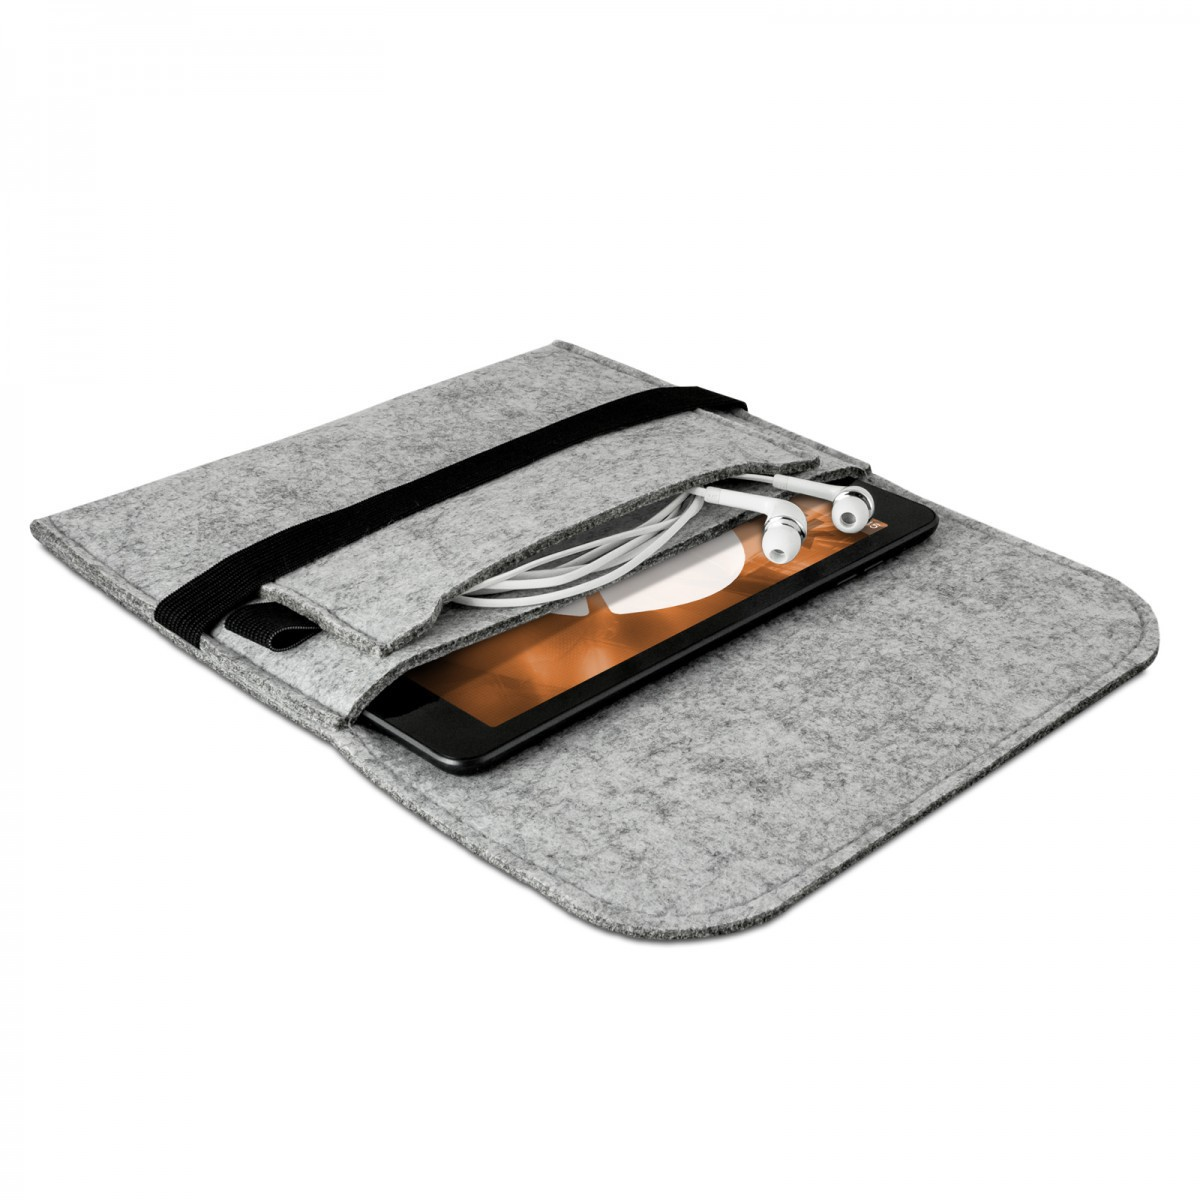 tasche f r apple ipad mini 4 3 2 1 schutz h lle filz sleeve grau ebay. Black Bedroom Furniture Sets. Home Design Ideas